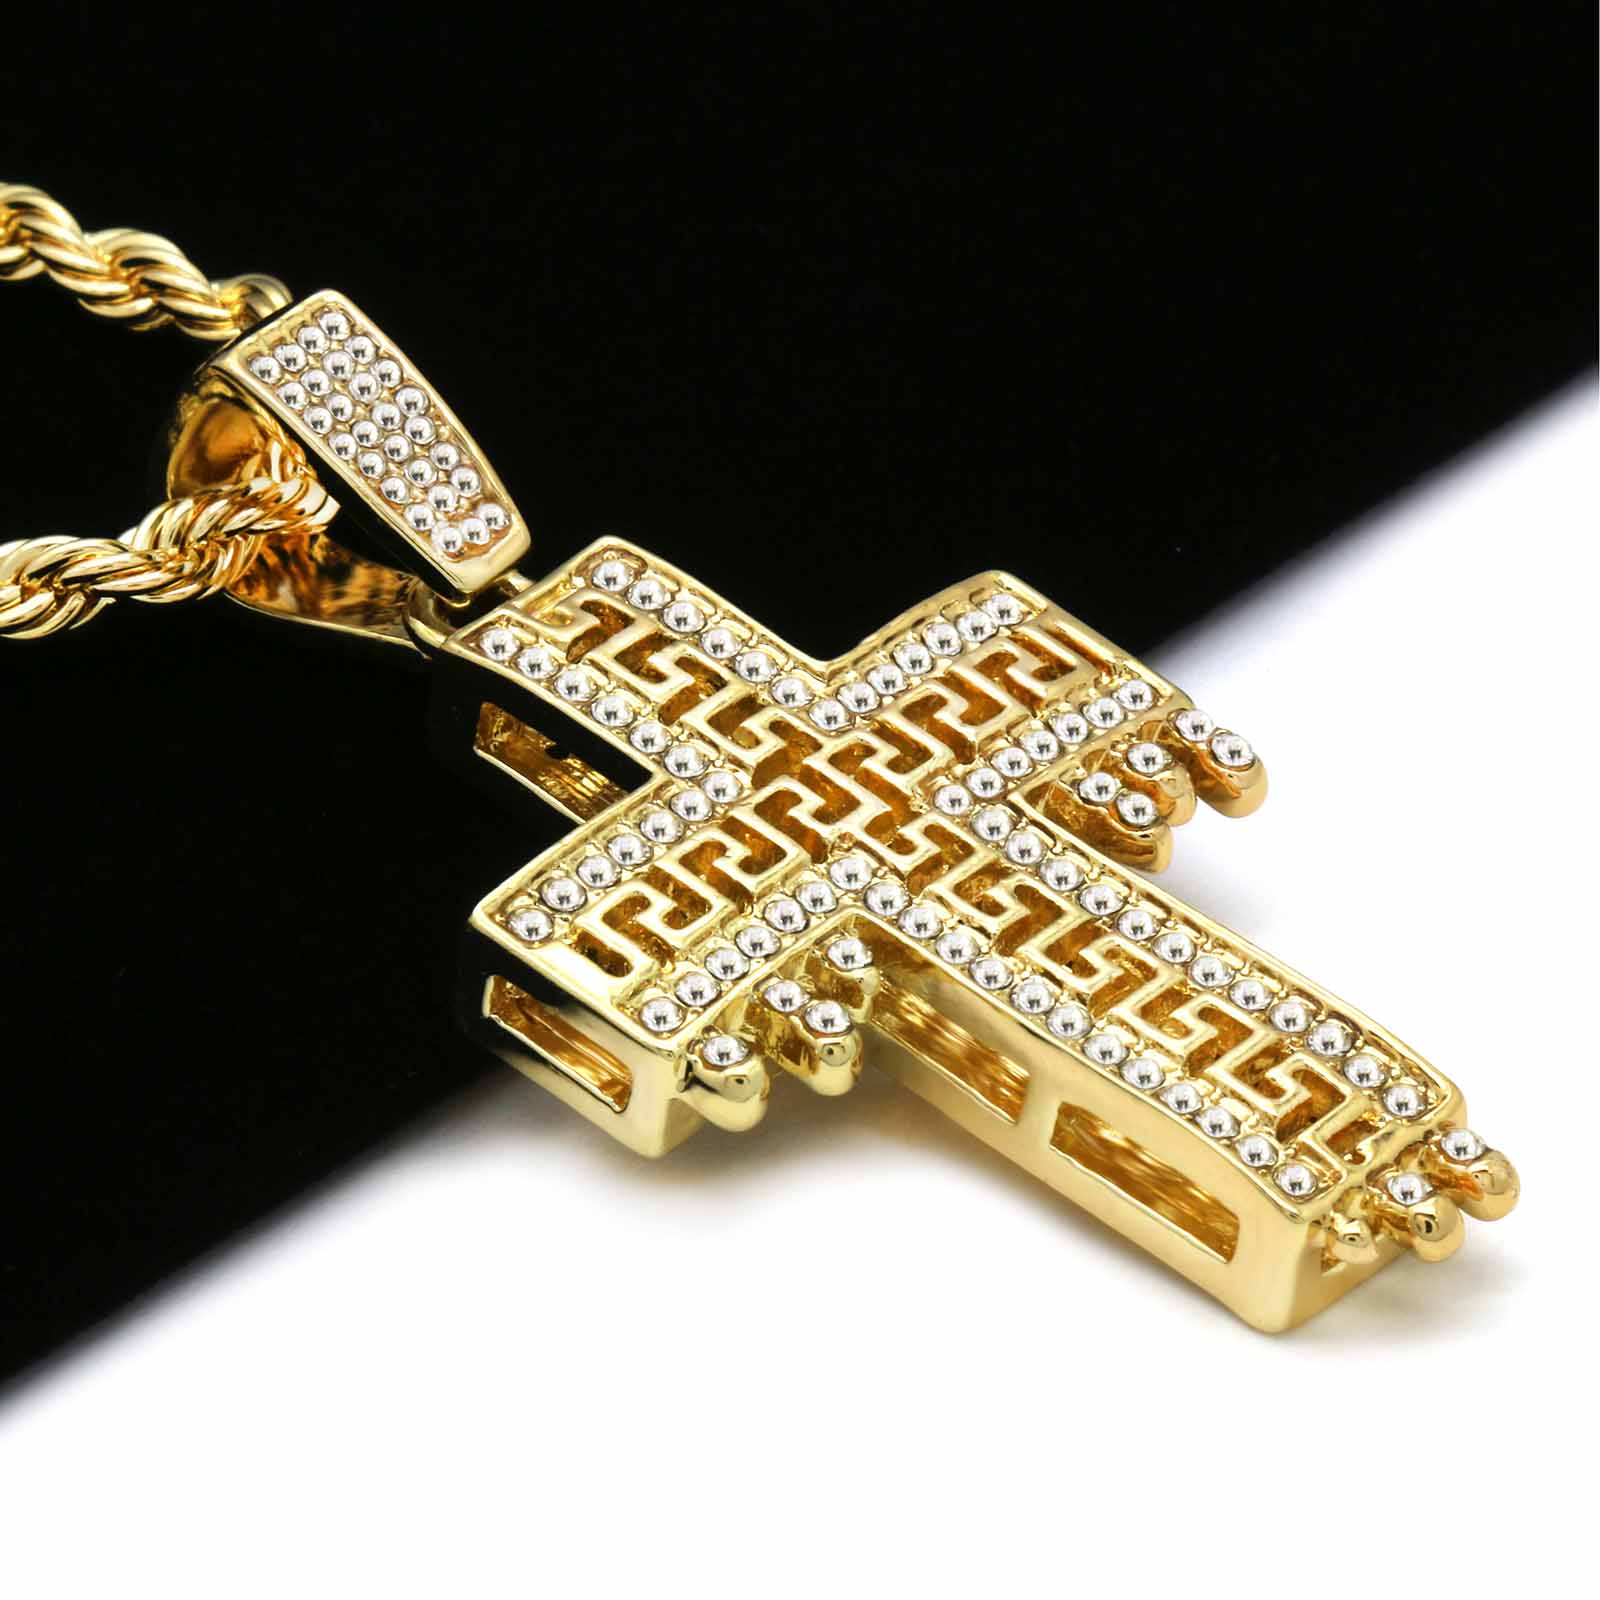 DRIP DESIGN CROSS PENDANT WITH GOLD ROPE CHAIN